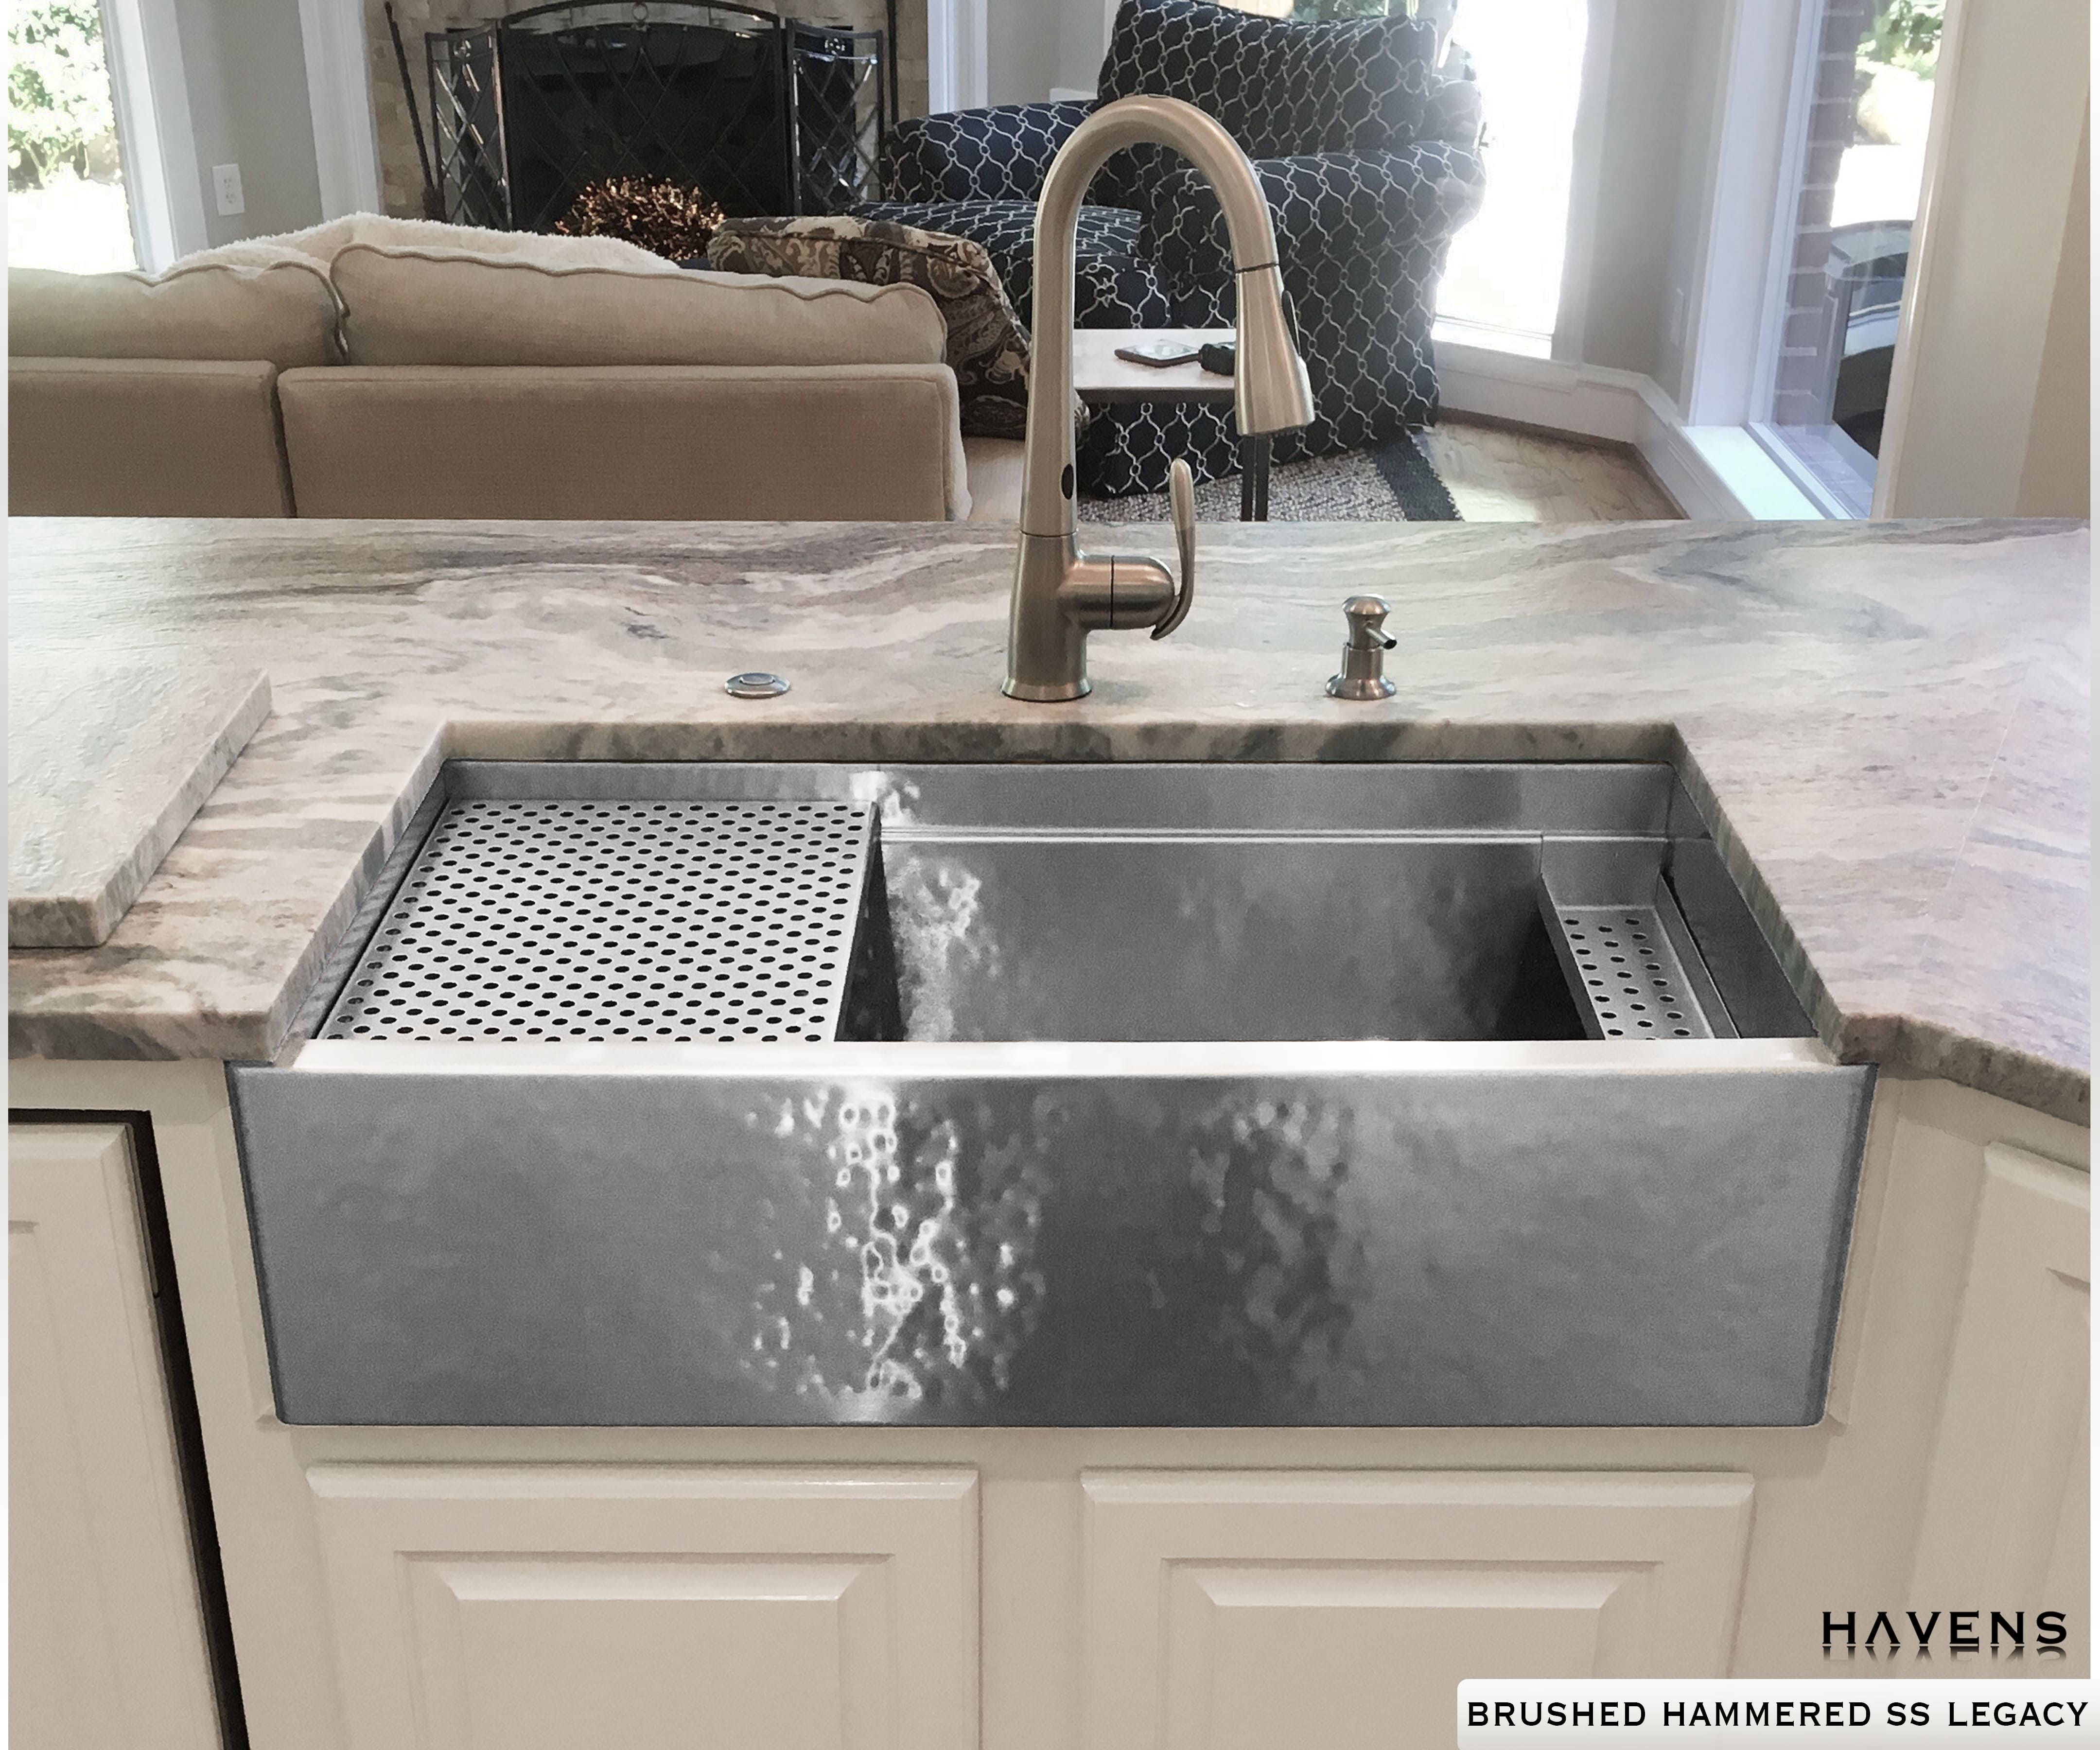 Hammered Stainless Steel Farmhouse Legacy Workstation Sink Farmhouse Sink Stainless Steel Sinks Sink